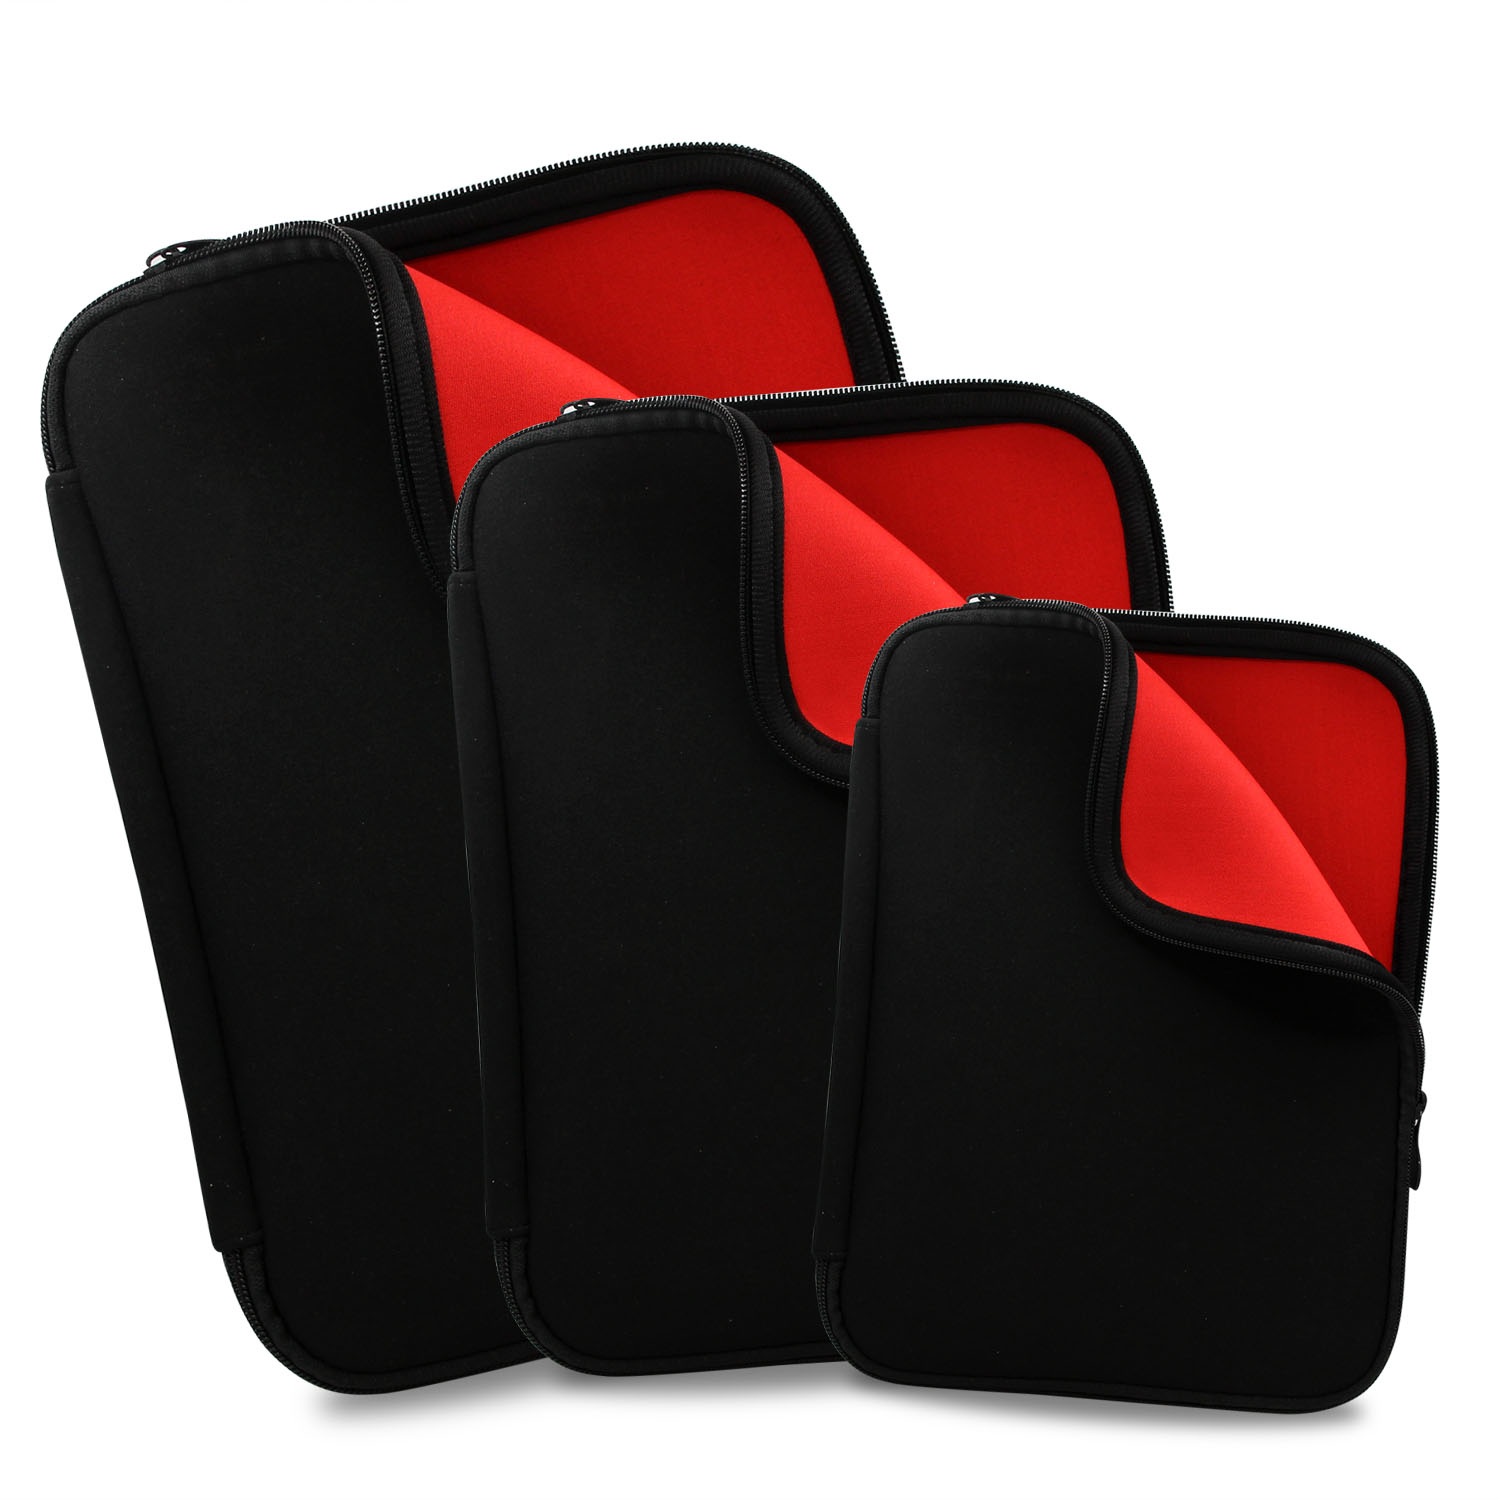 Ultimaxx NEOPRENE LAPTOP SLEEV